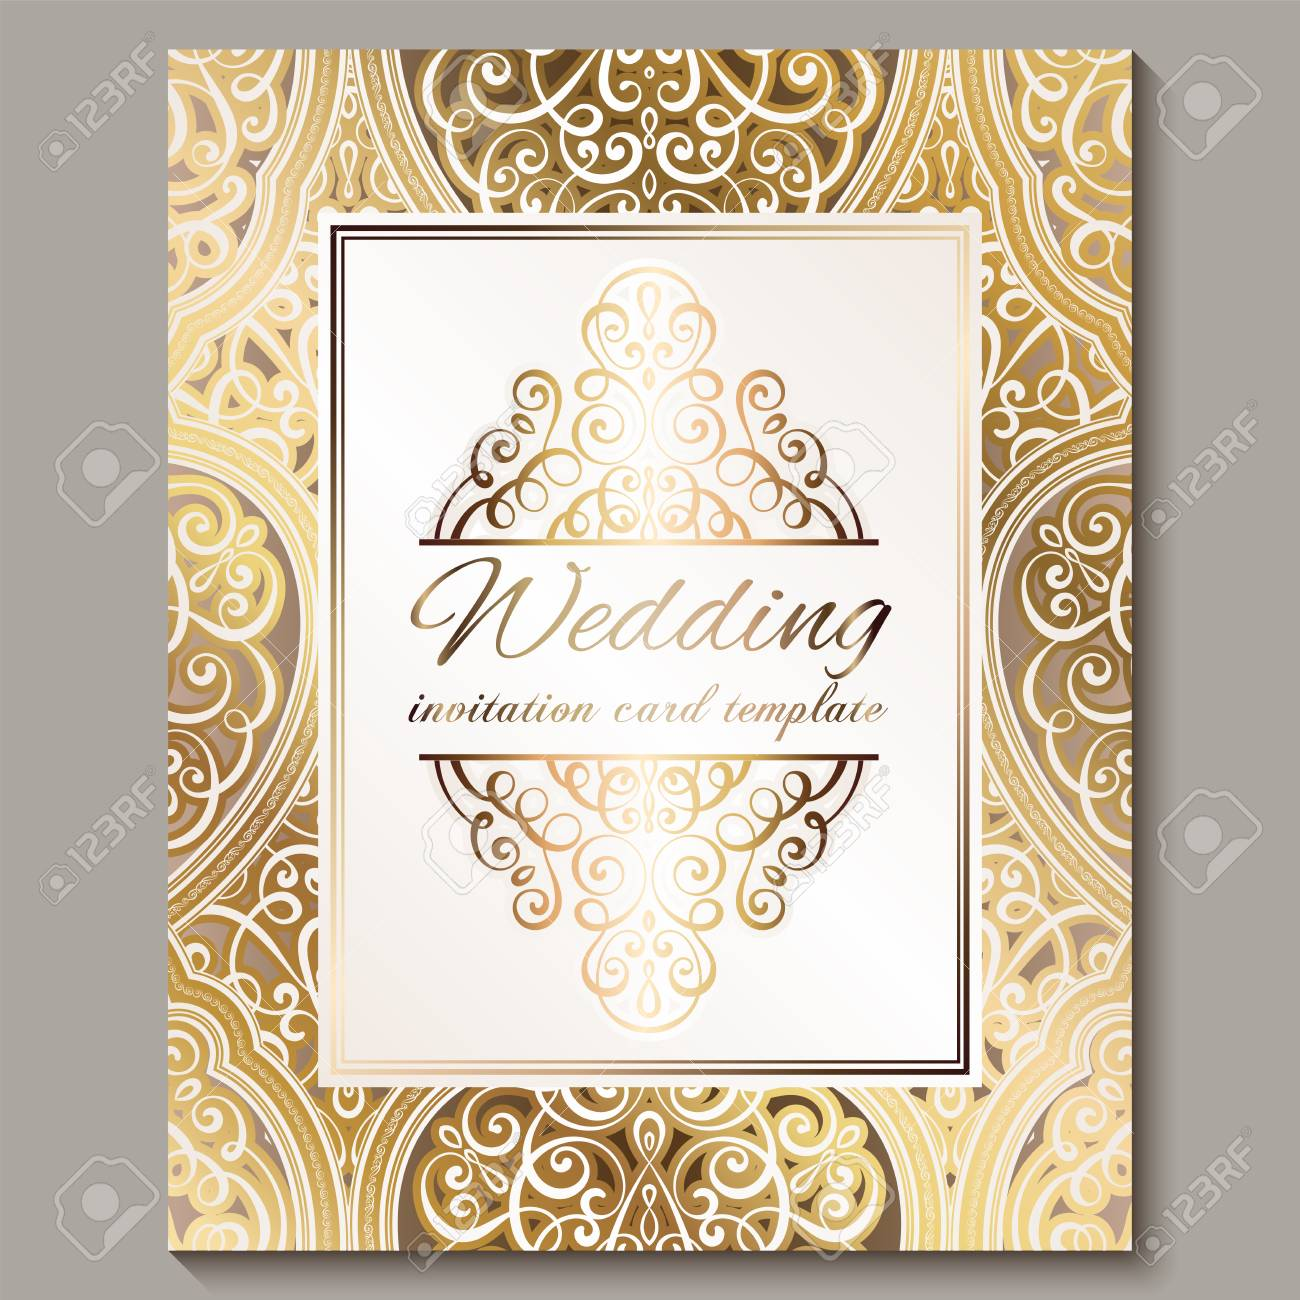 Wedding Invitation Card With Gold Shiny Eastern And Baroque Rich